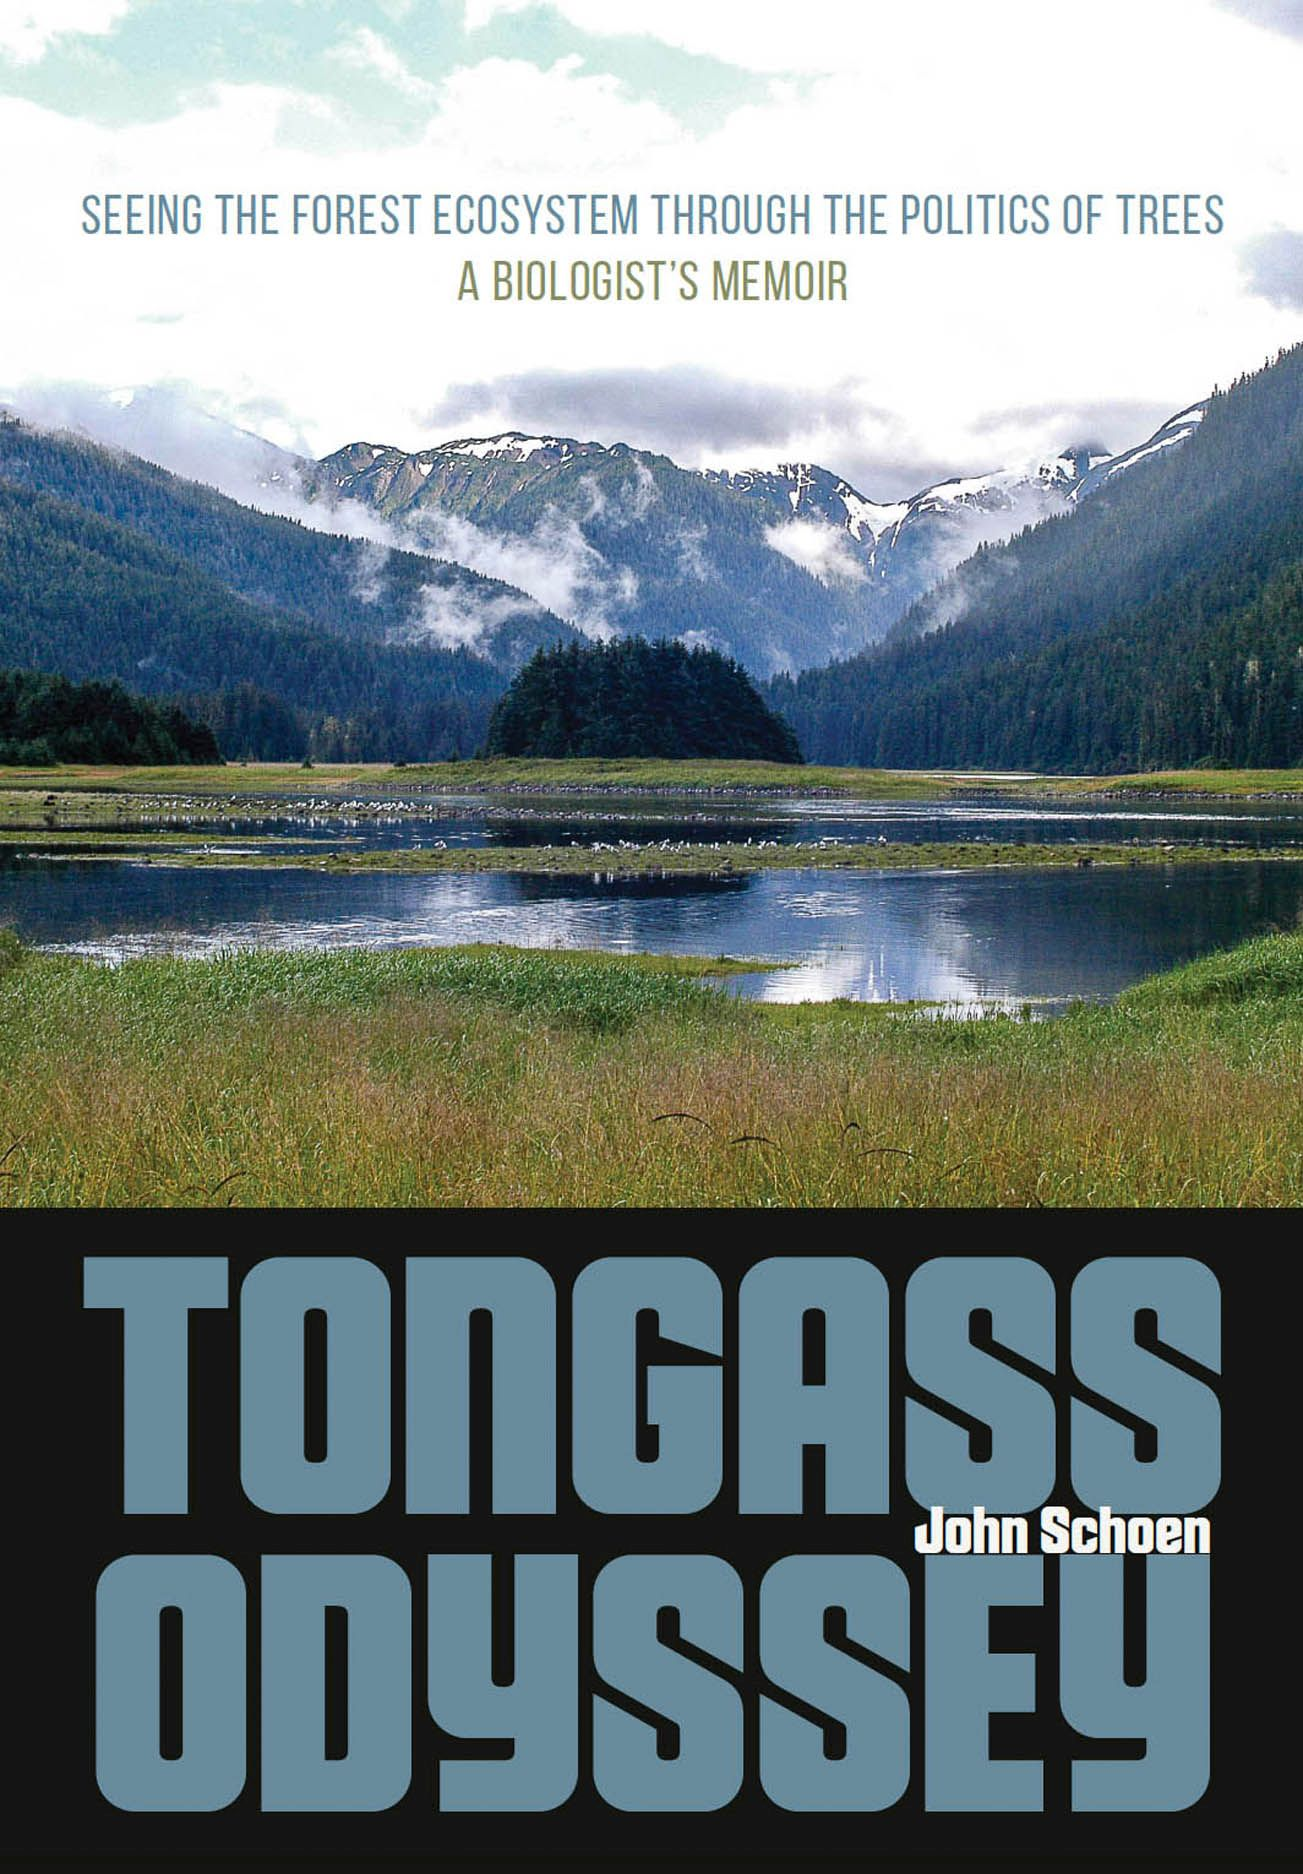 Tongass Odyssey: Seeing the Forest Ecosystem through the Politics of Trees